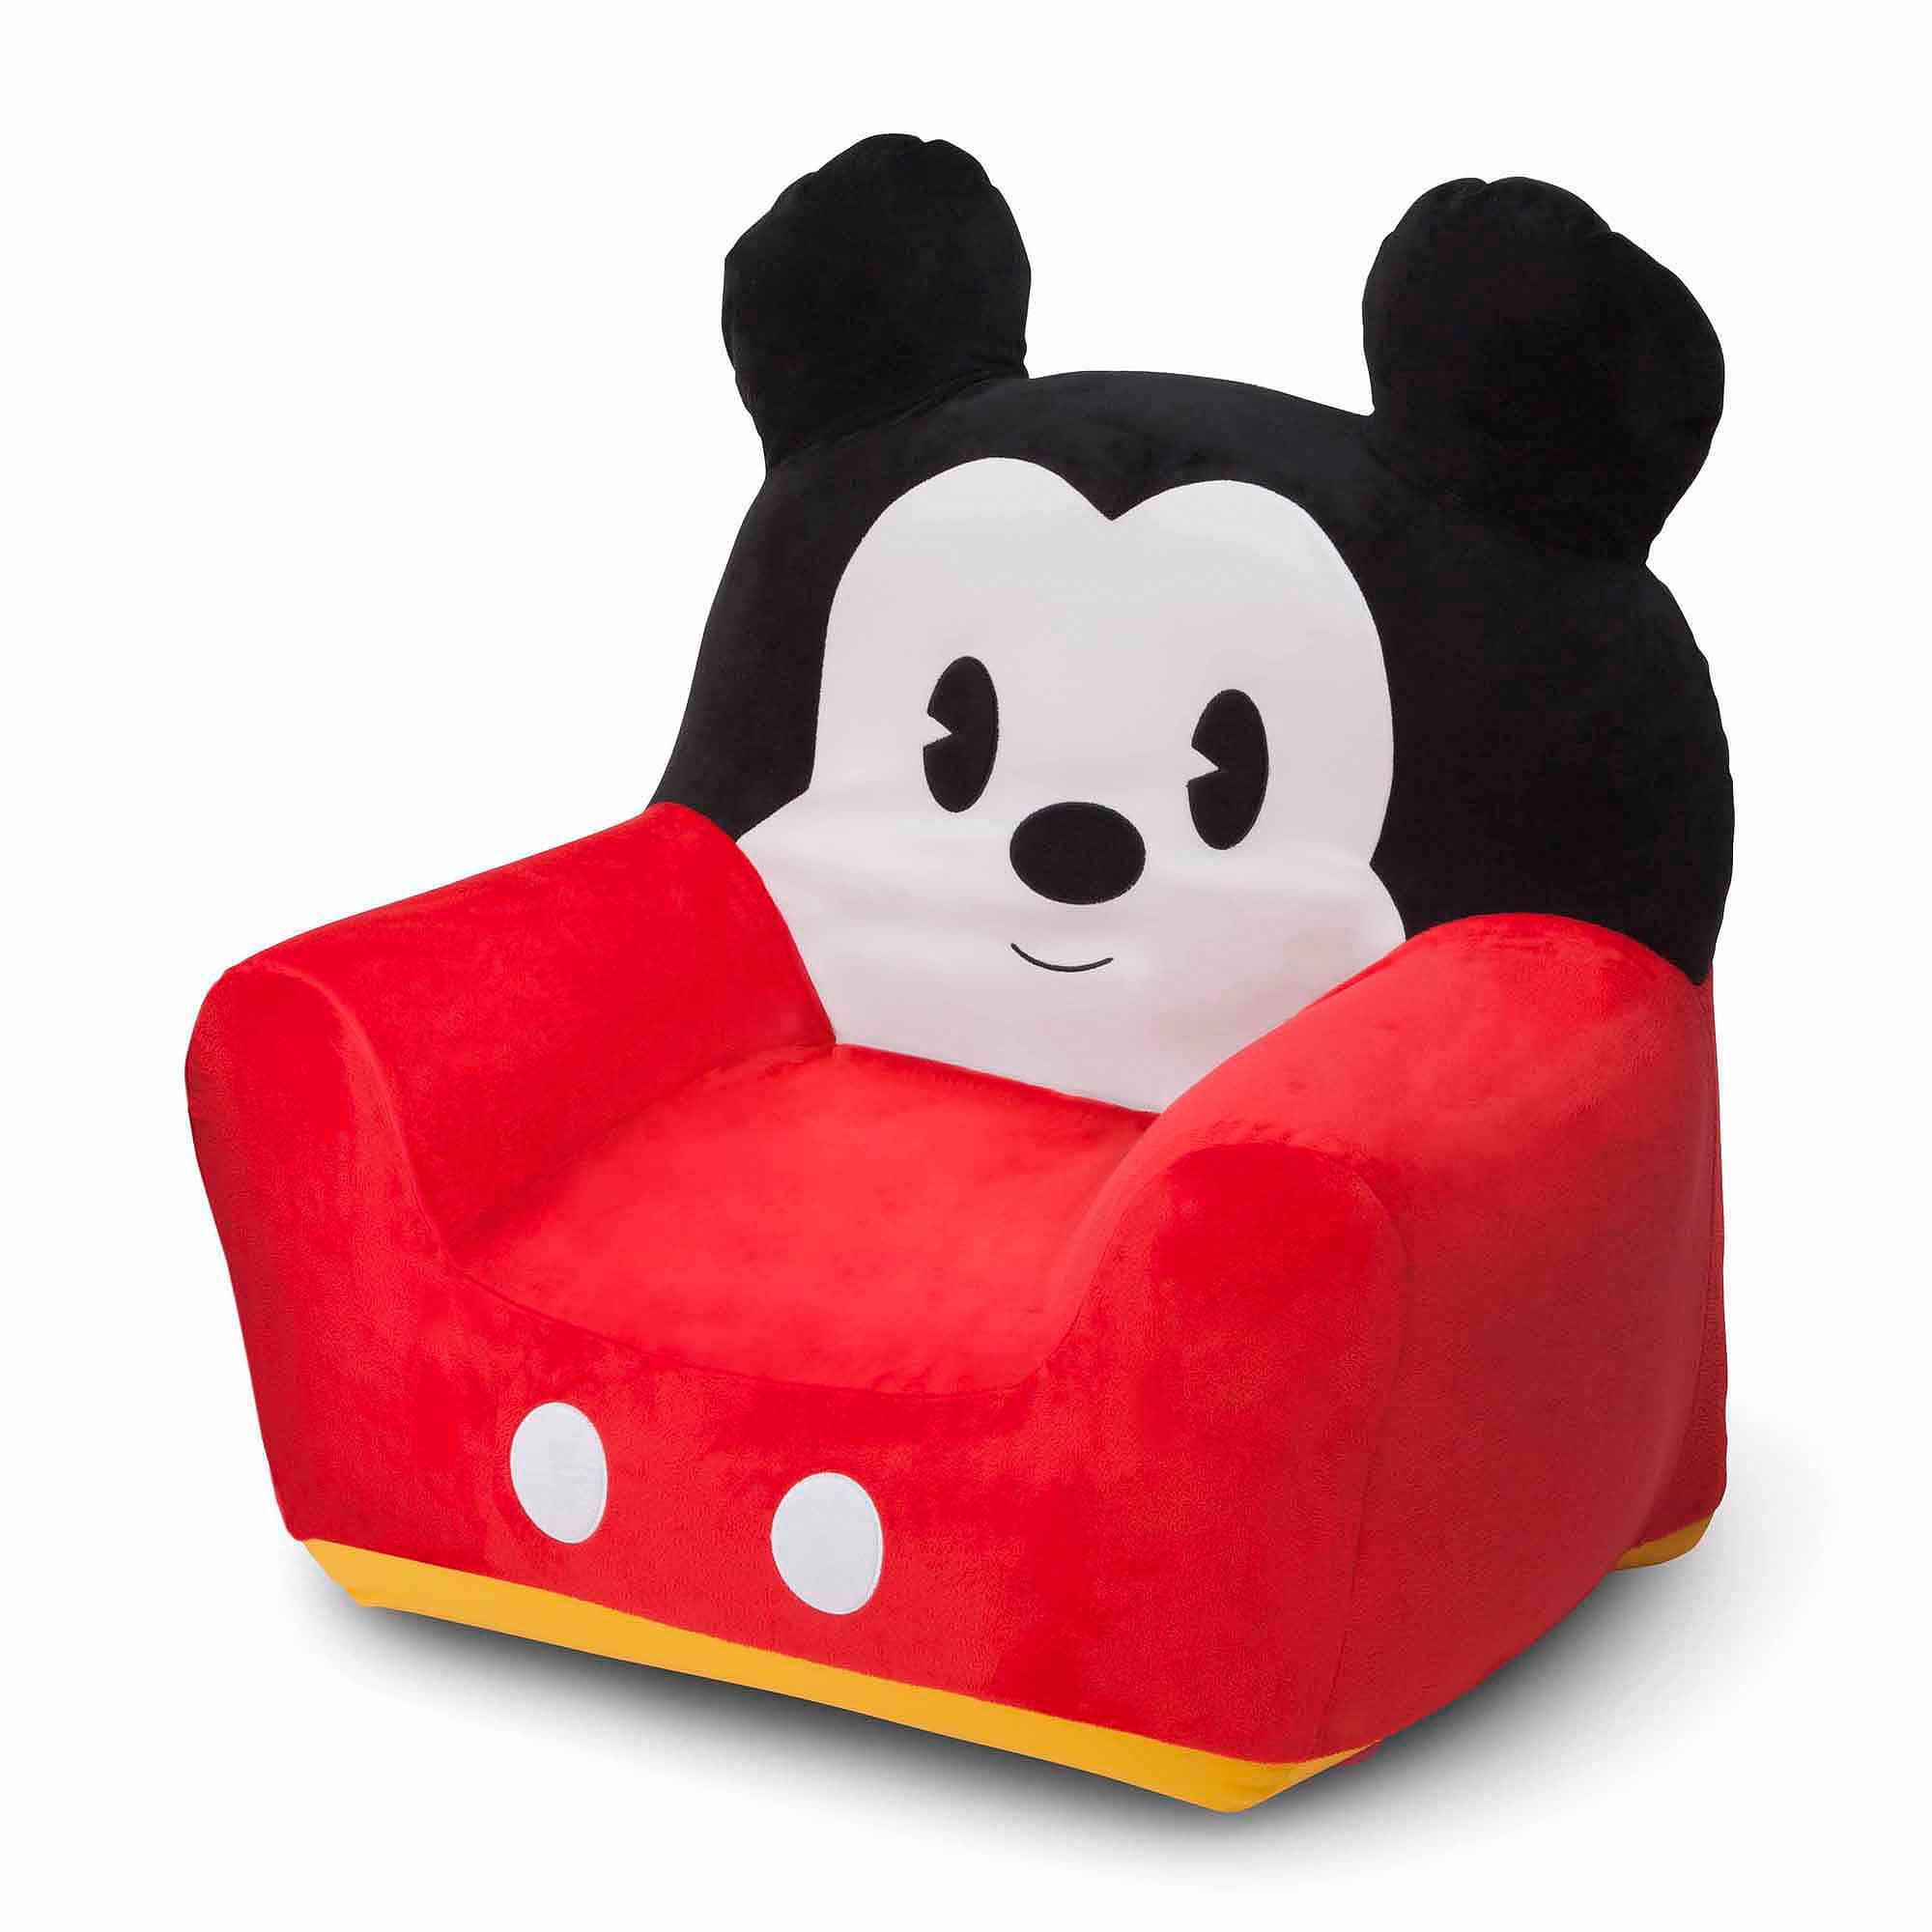 Mickey Mouse Chairs For Toddlers Disney Mickey Mouse Chair Desk With Storage Bin By Delta Children